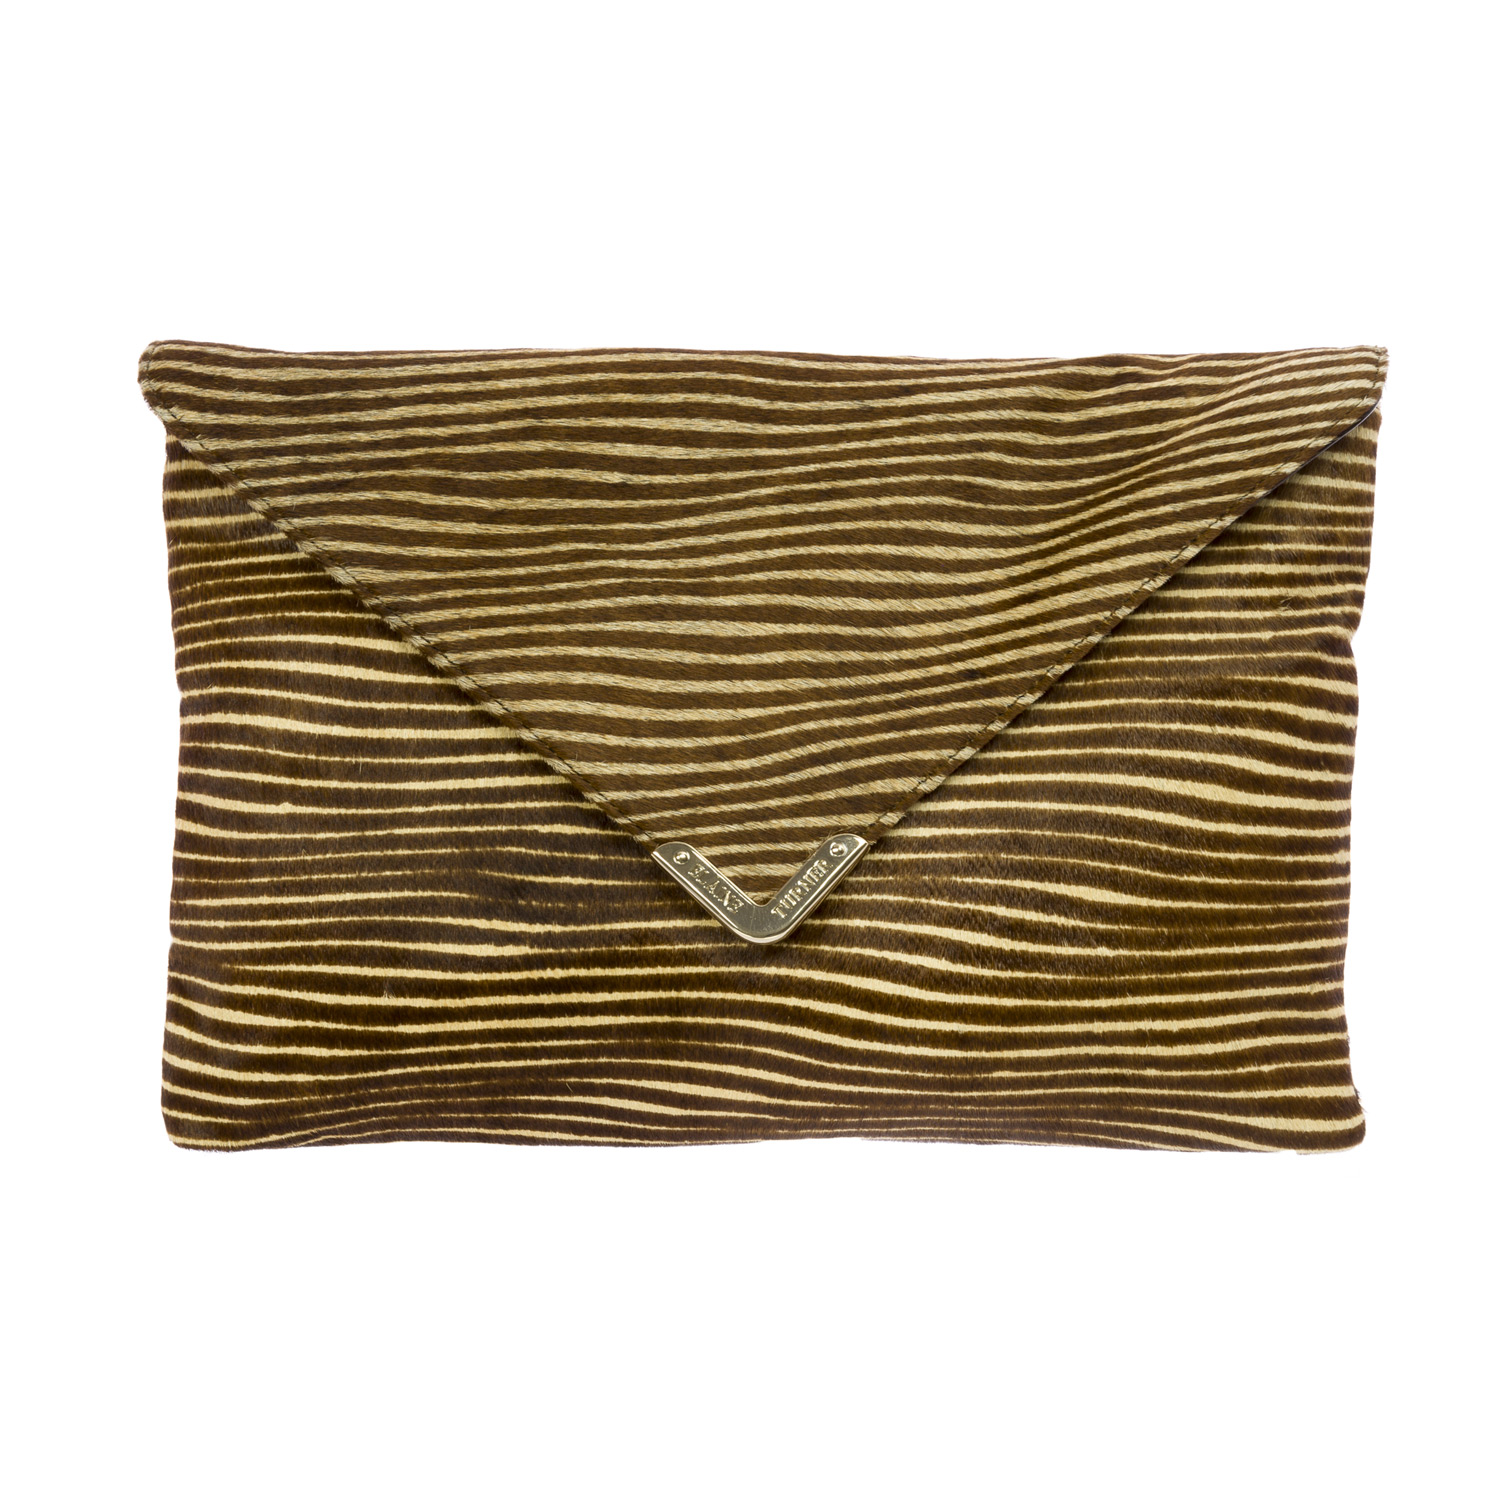 Elaine Turner Women's Calf Hair Rachel Envelope Clutch Bag One Size Optic